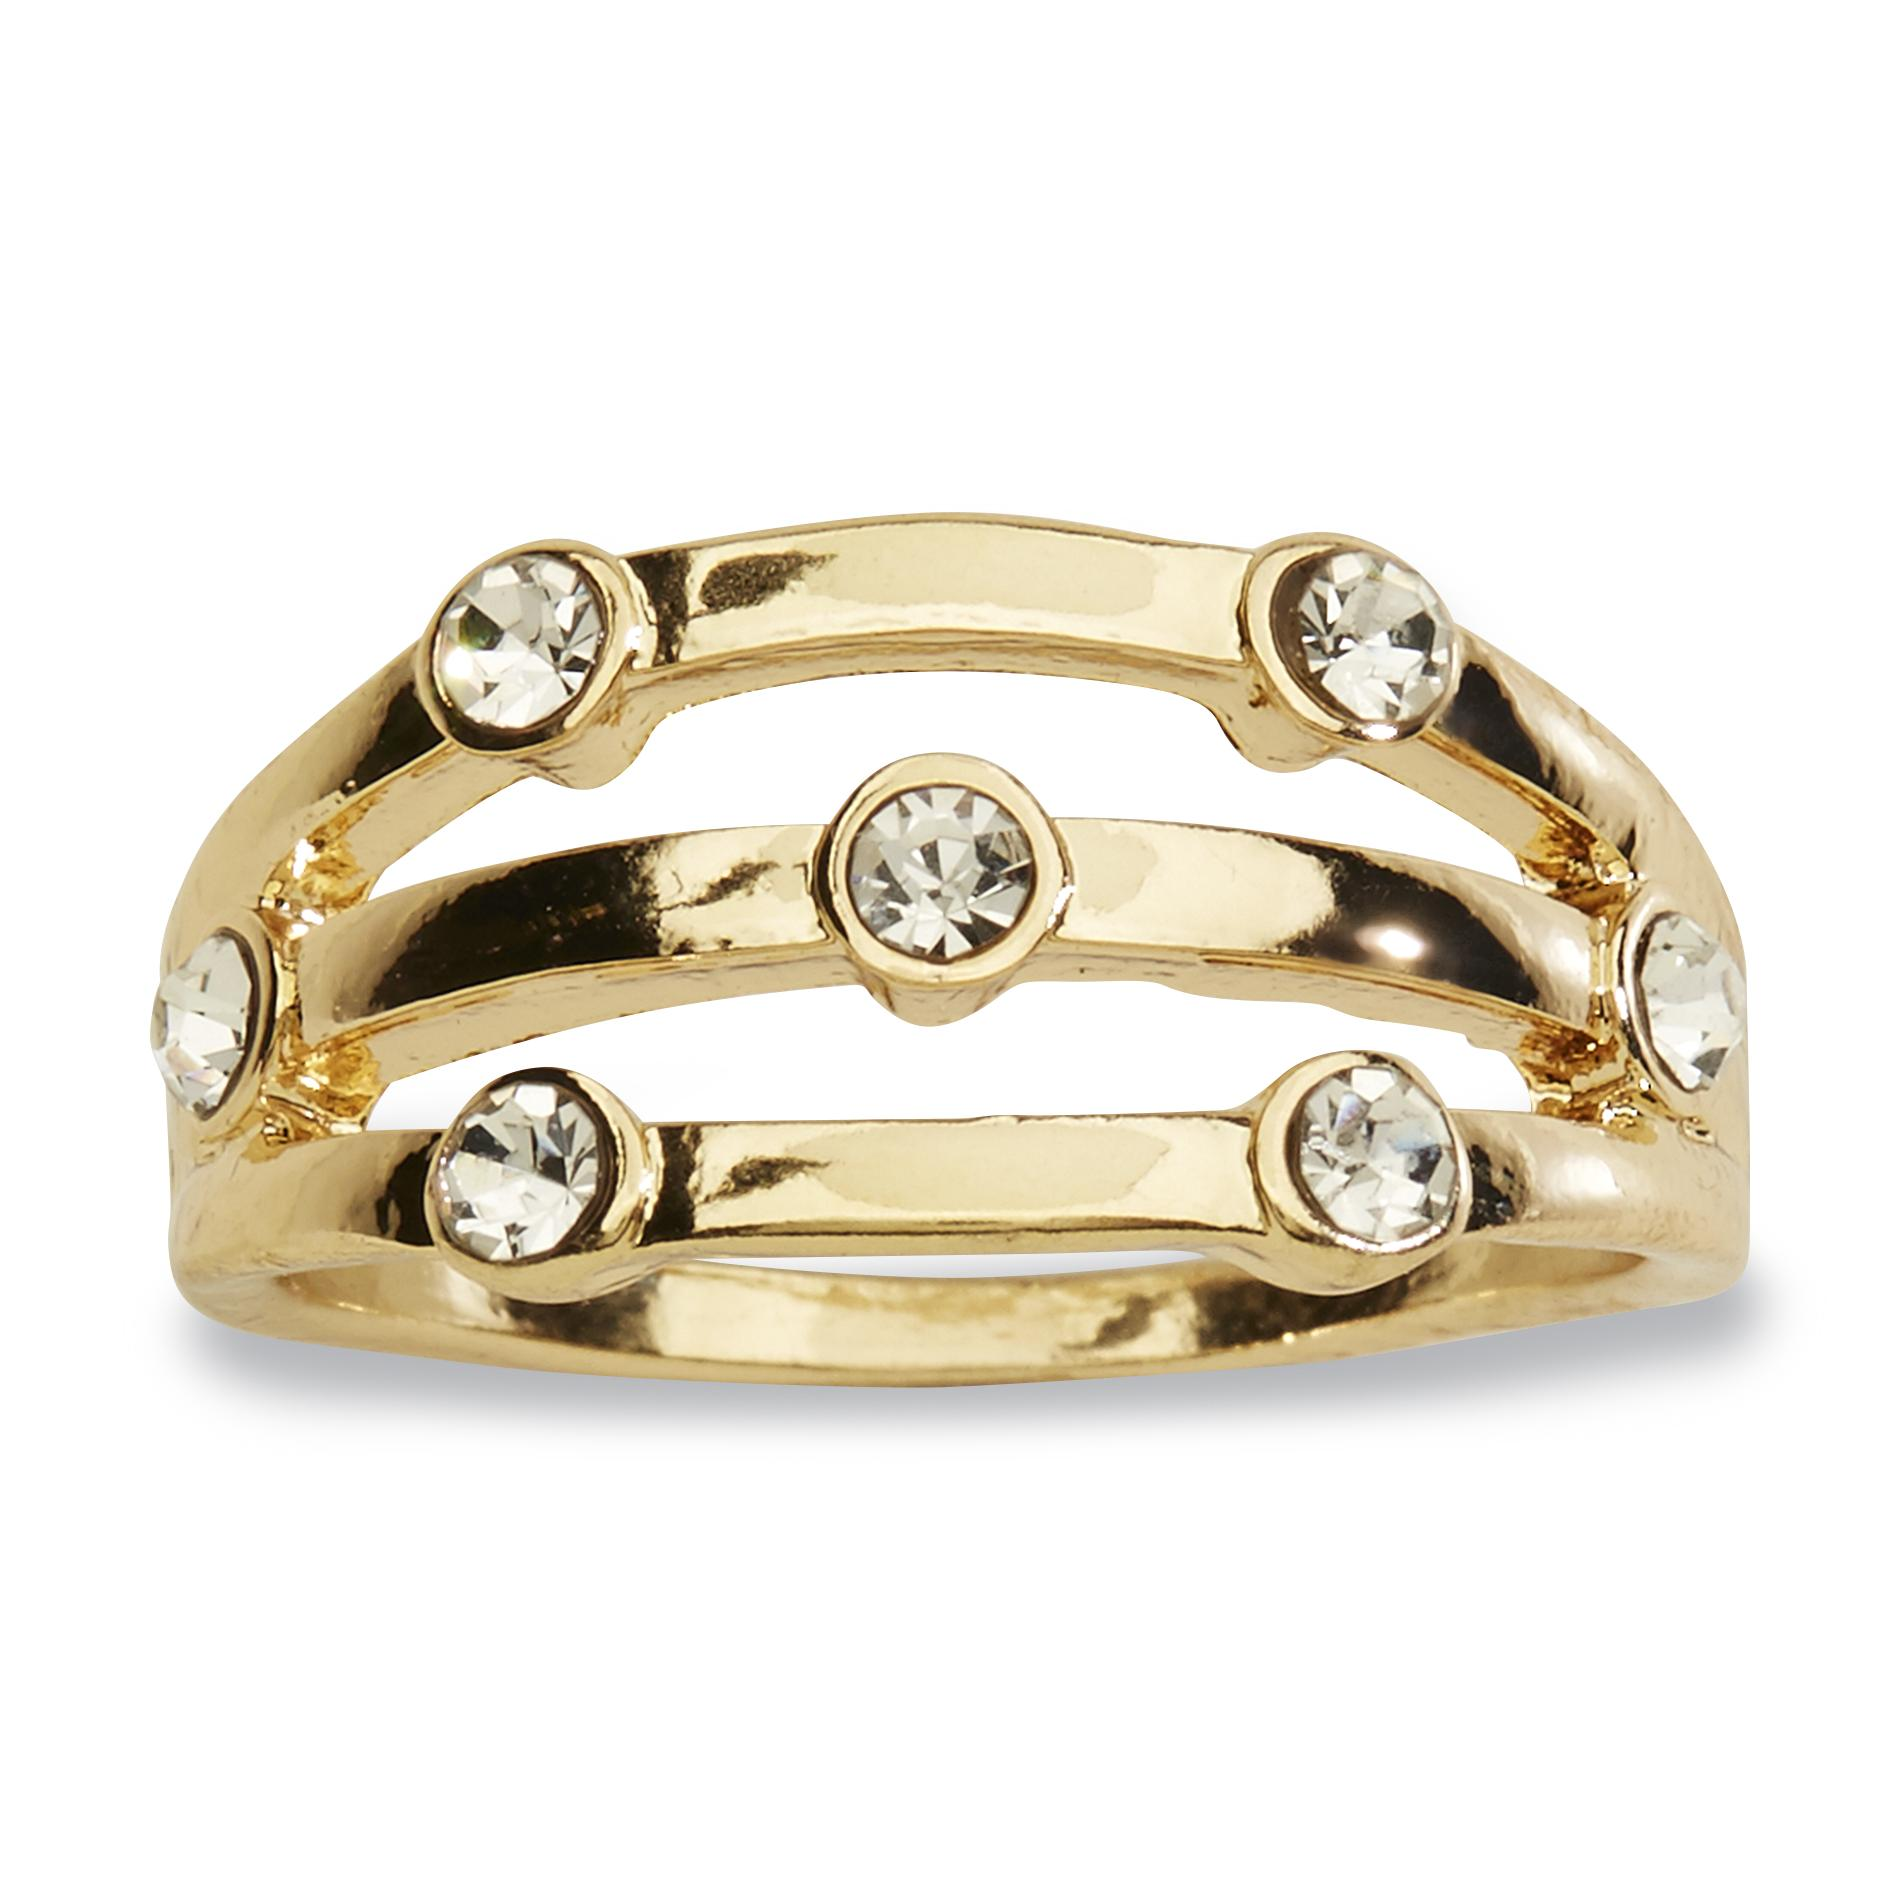 Attention Women's Goldtone Cocktail Ring